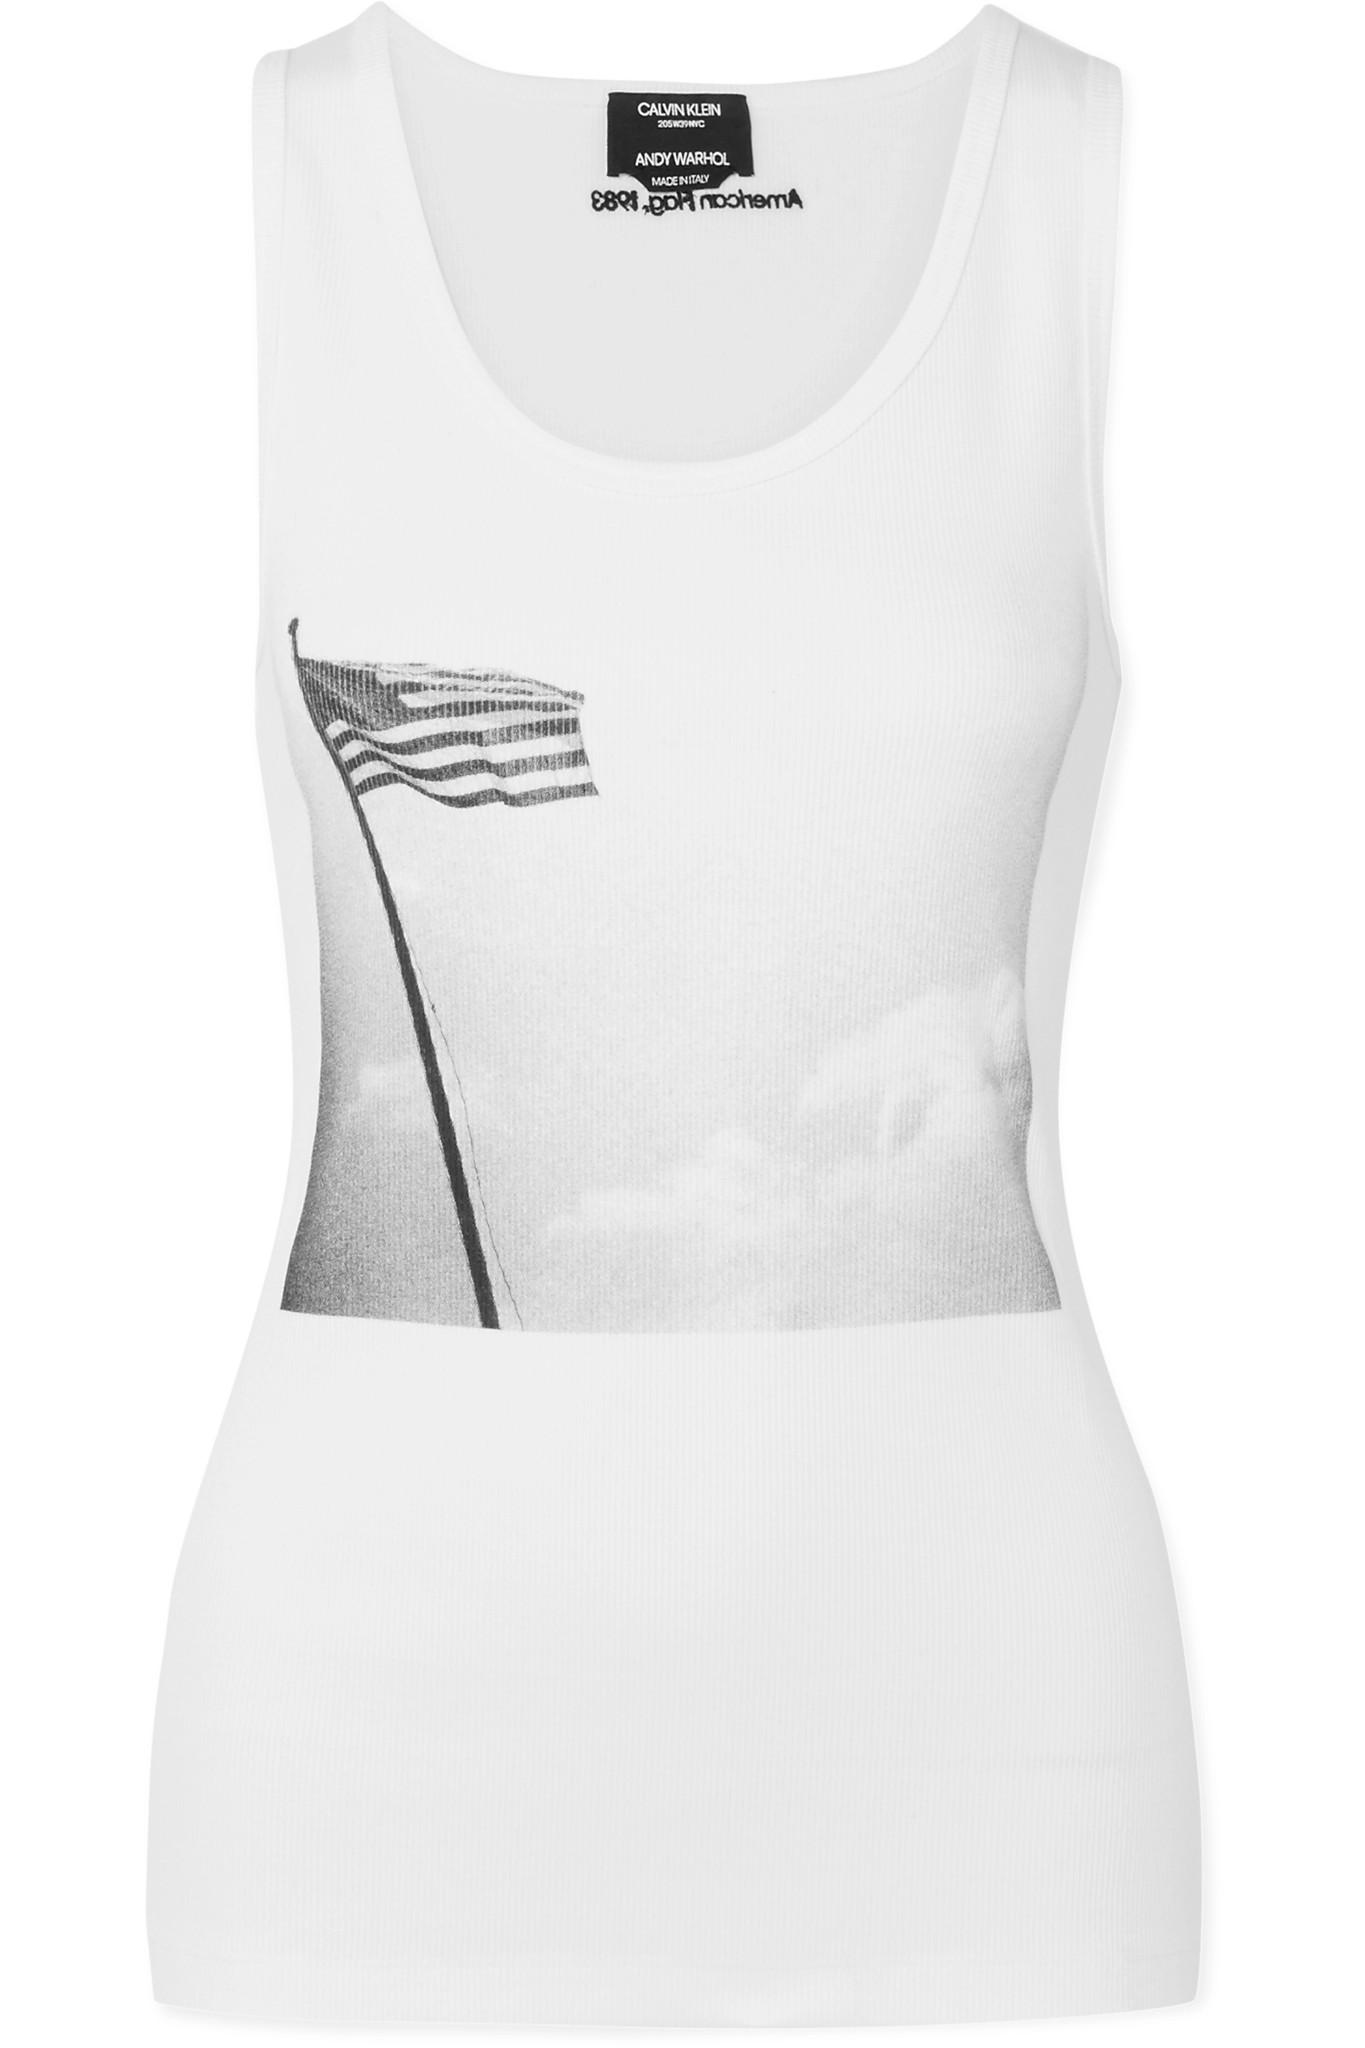 Official Site Cheap Online Buy Cheap Very Cheap + Andy Warhol Foundation Printed Ribbed Stretch-cotton Jersey Tank - White CALVIN KLEIN 205W39NYC Wholesale Price For Sale For Nice HYID8Oov88